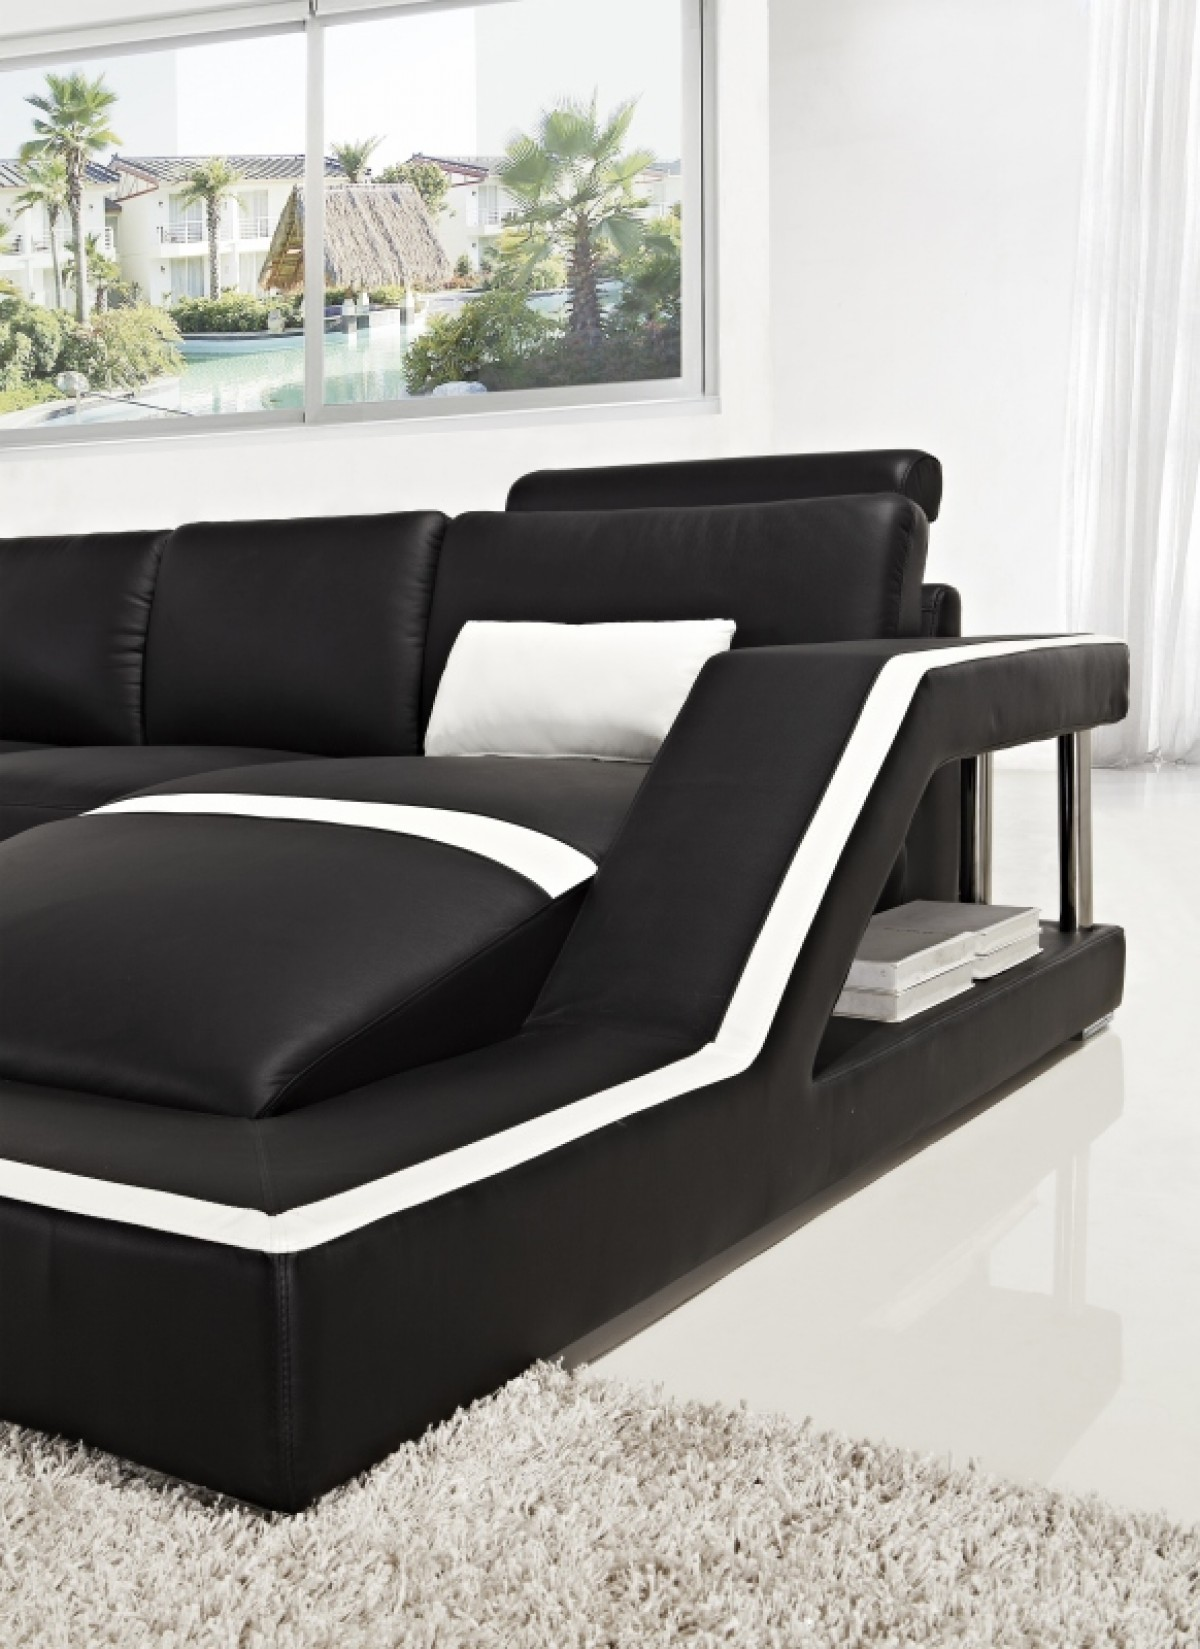 VIG Furniture Modern Sectional Black Couch #VGYIT271